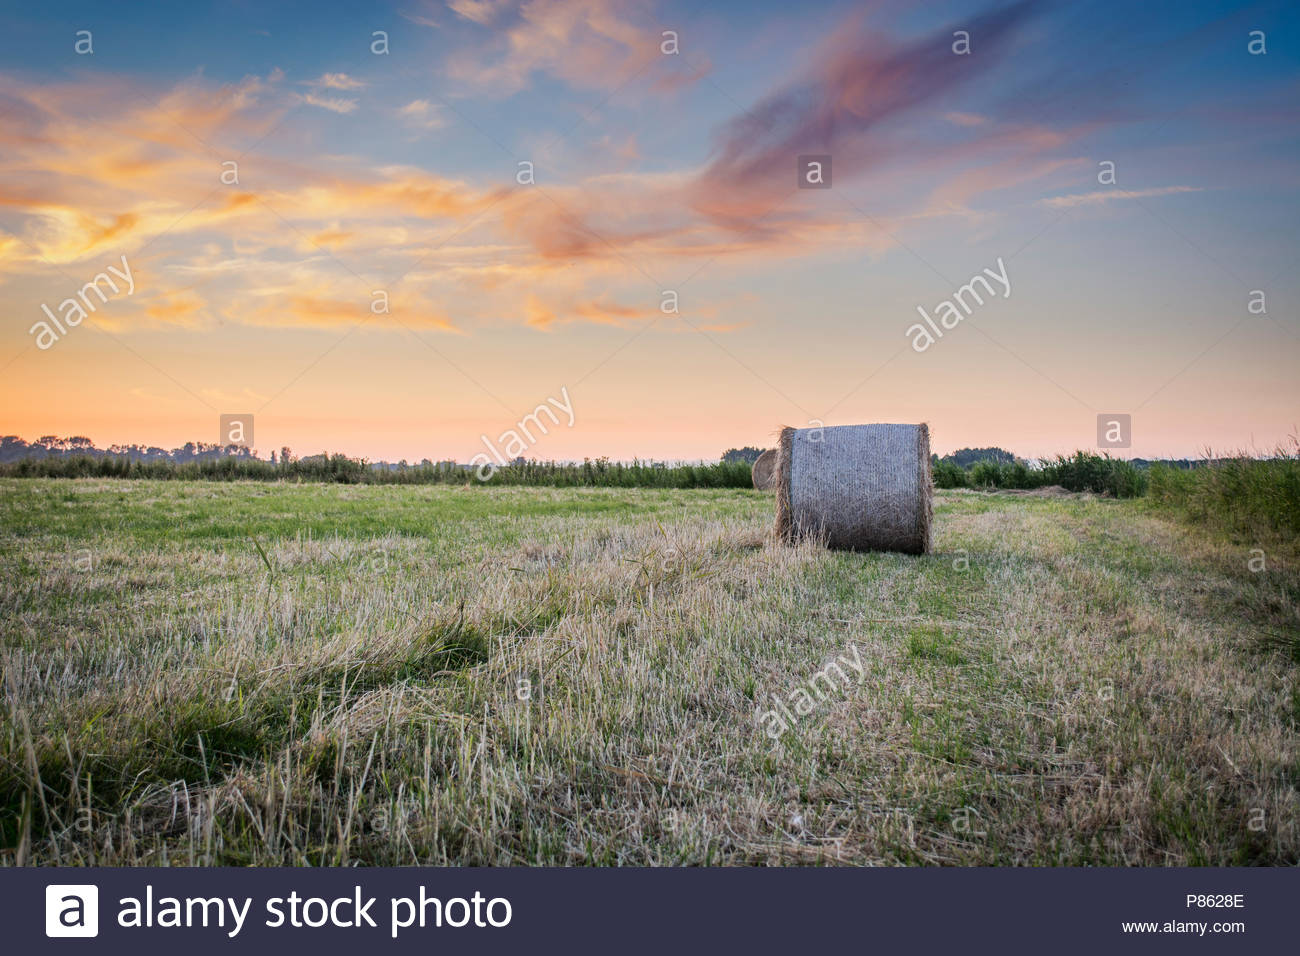 A bale at sunset with leading lines - Stock Image